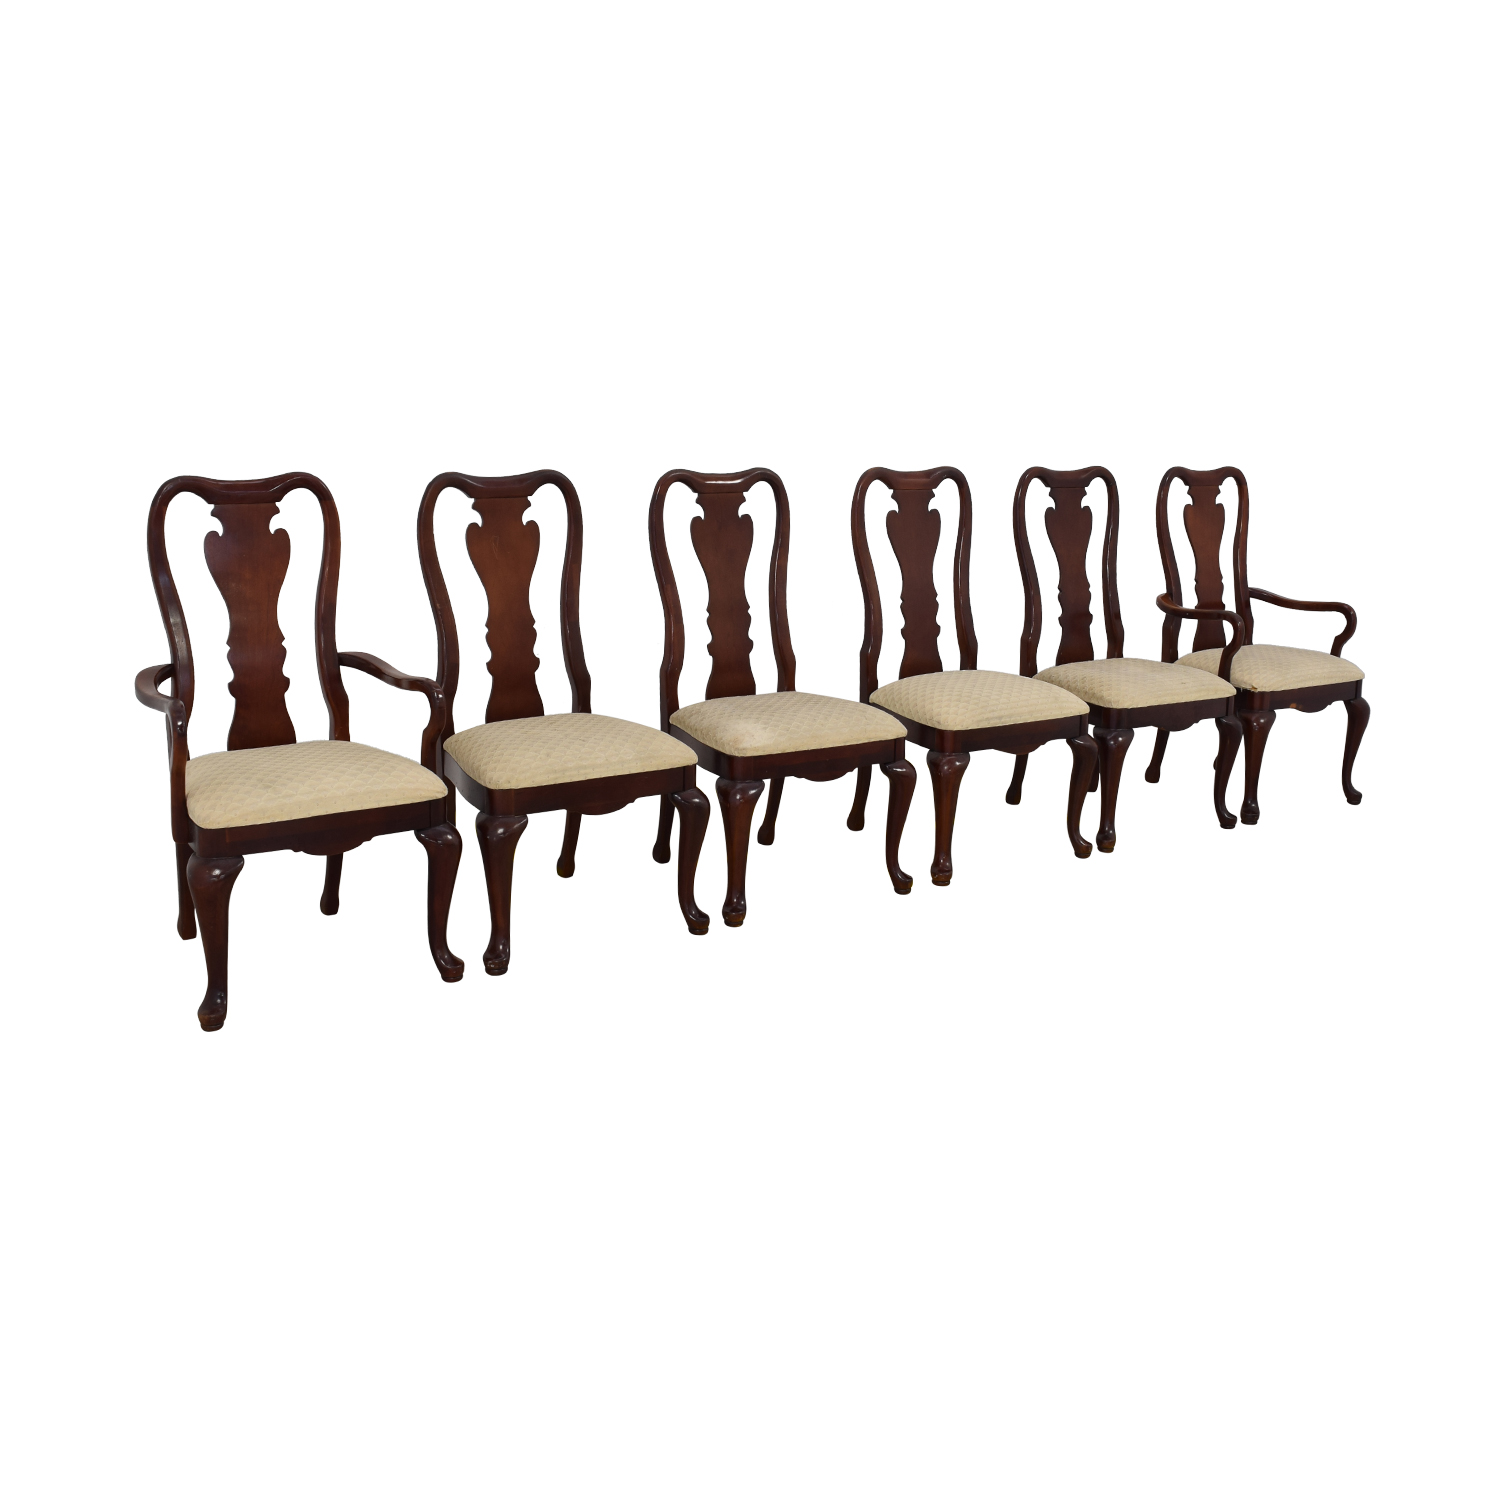 Thomasville Thomasville Traditional Queen Anne Style Dining Chairs dimensions